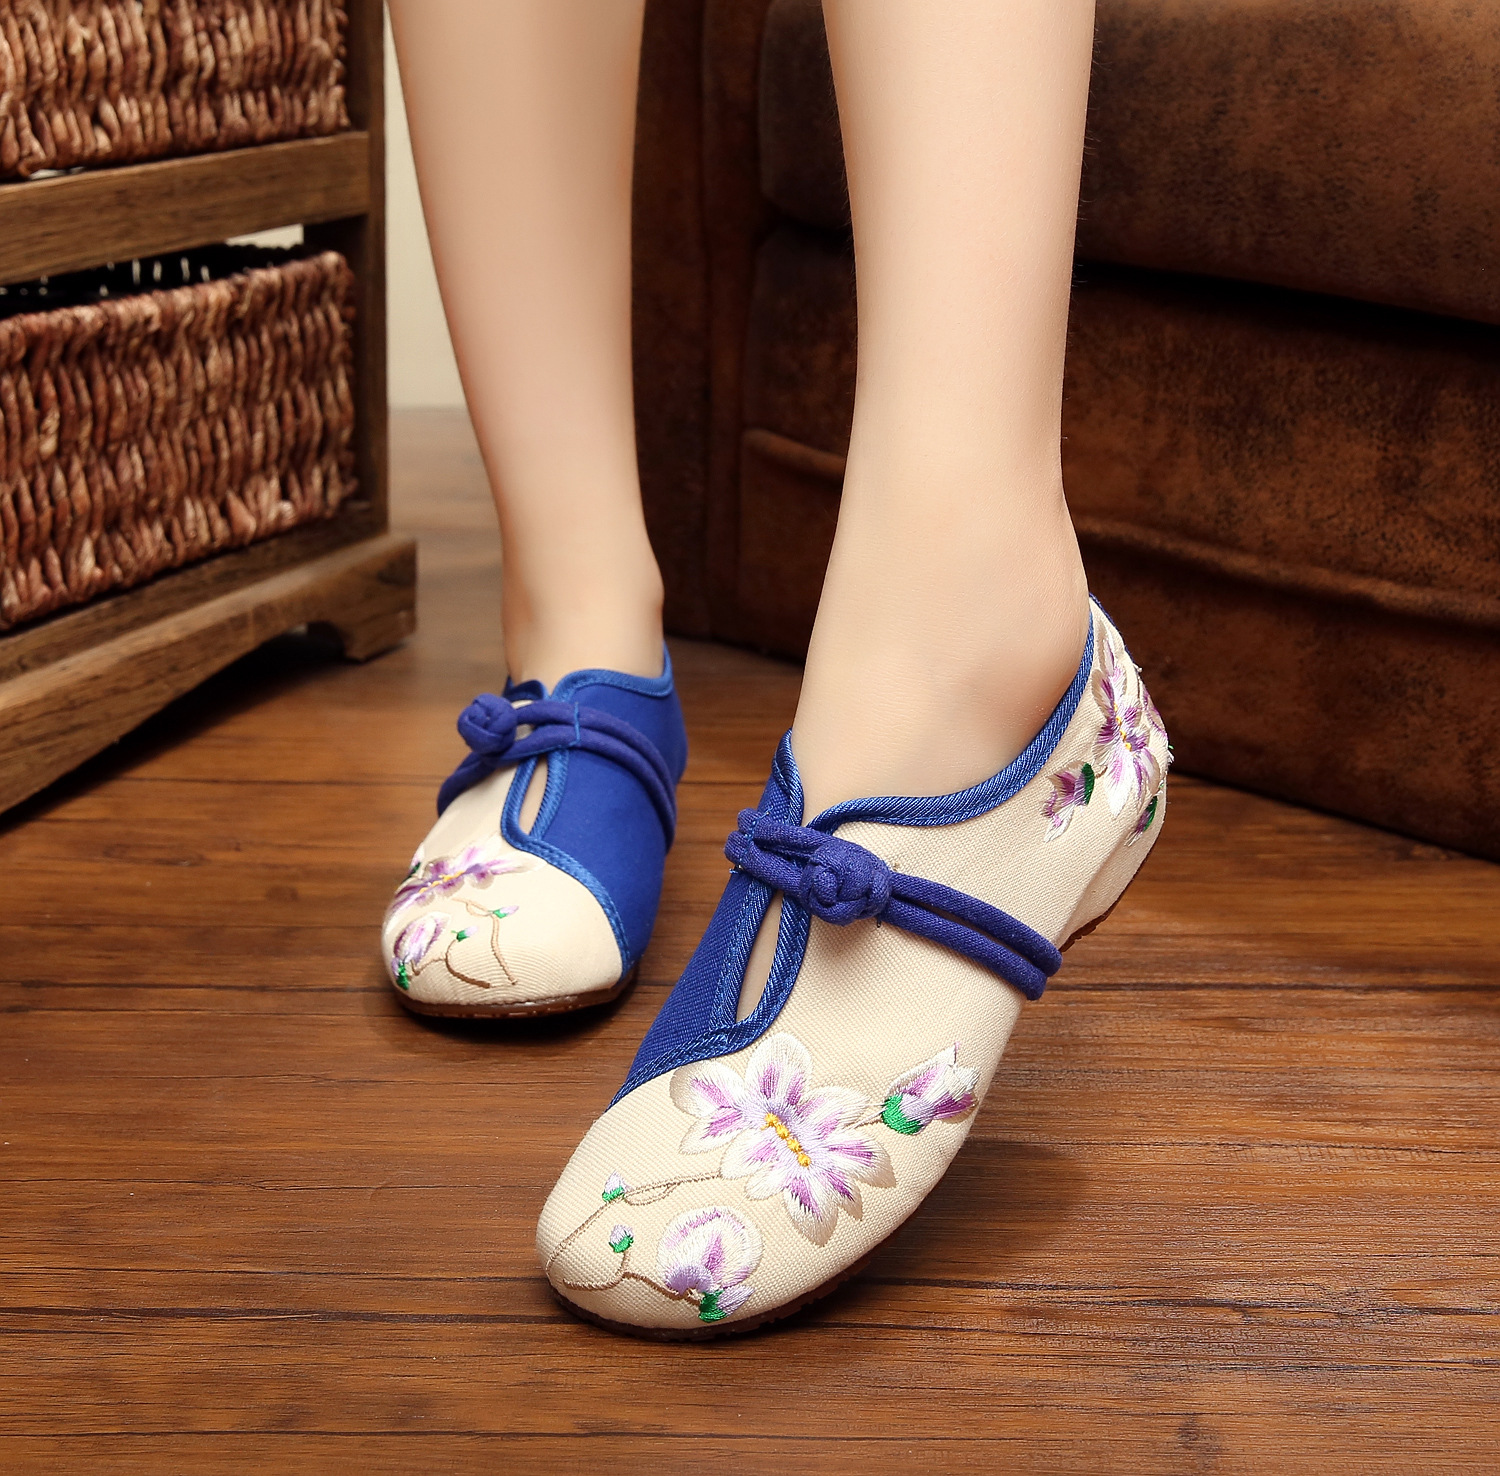 Pointed Old Beijing Flower Embroidered Women Shoes Mary Jane Flat Heel Denim Chinese Style natinal Cloth Plus Size Shoes Woman<br><br>Aliexpress